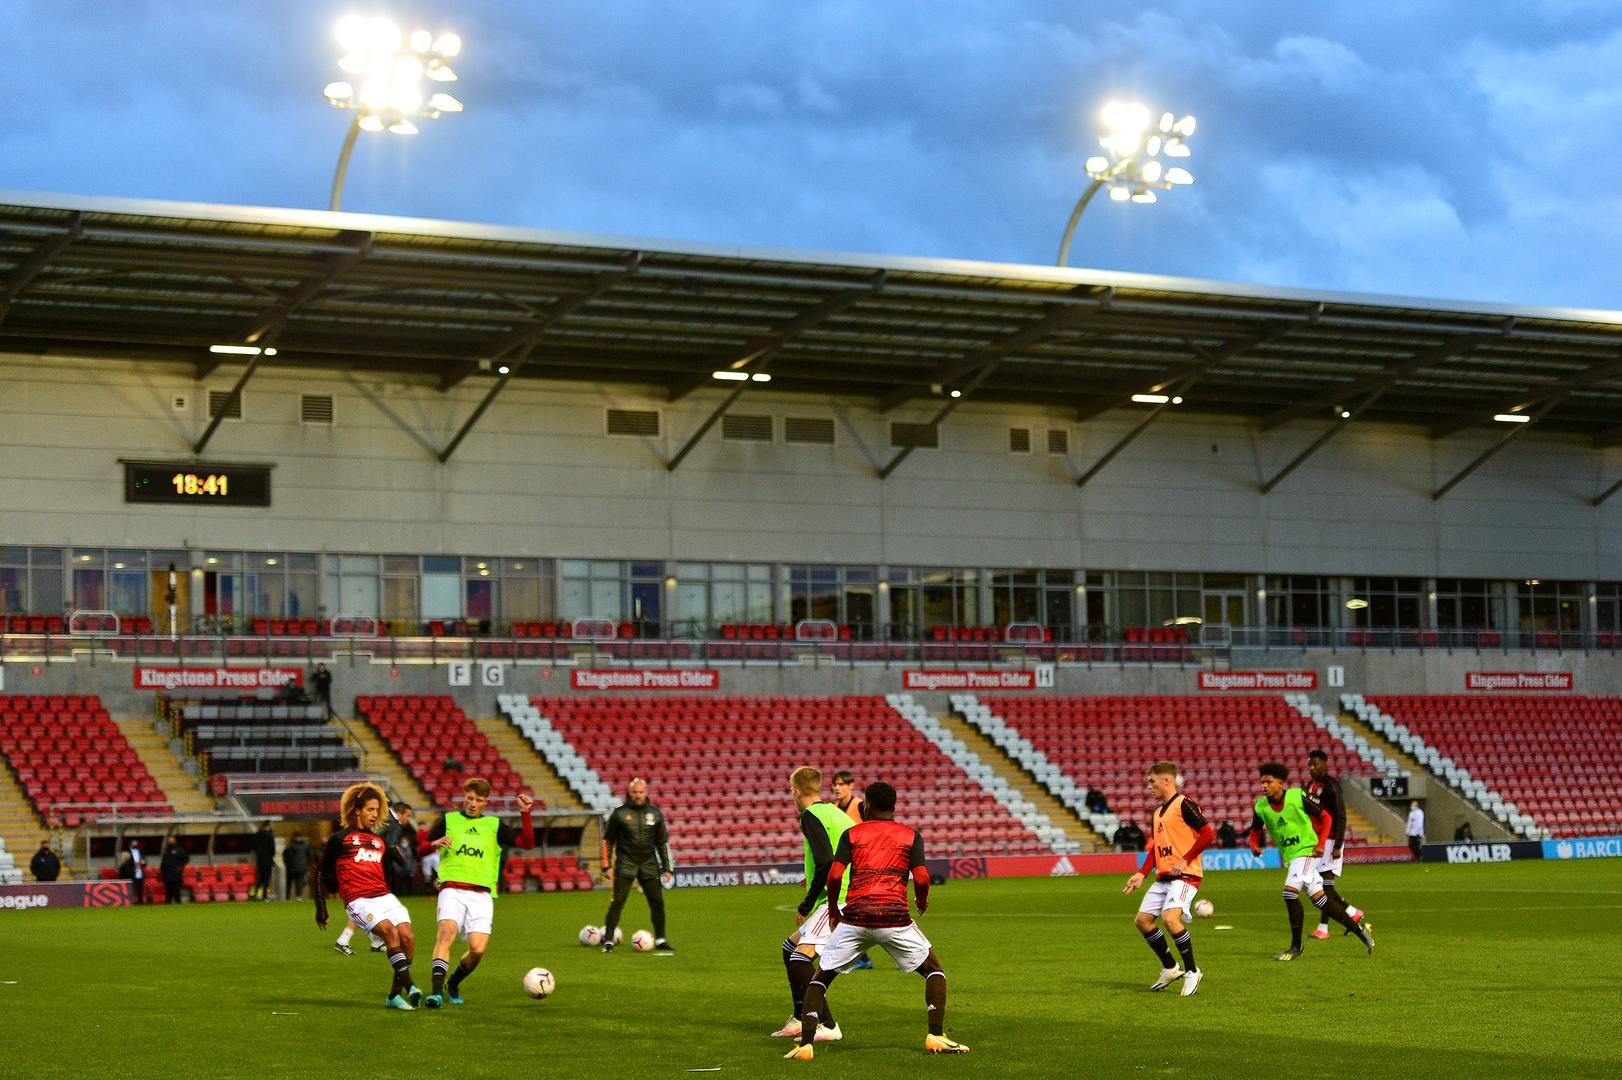 United warm up at Leigh.